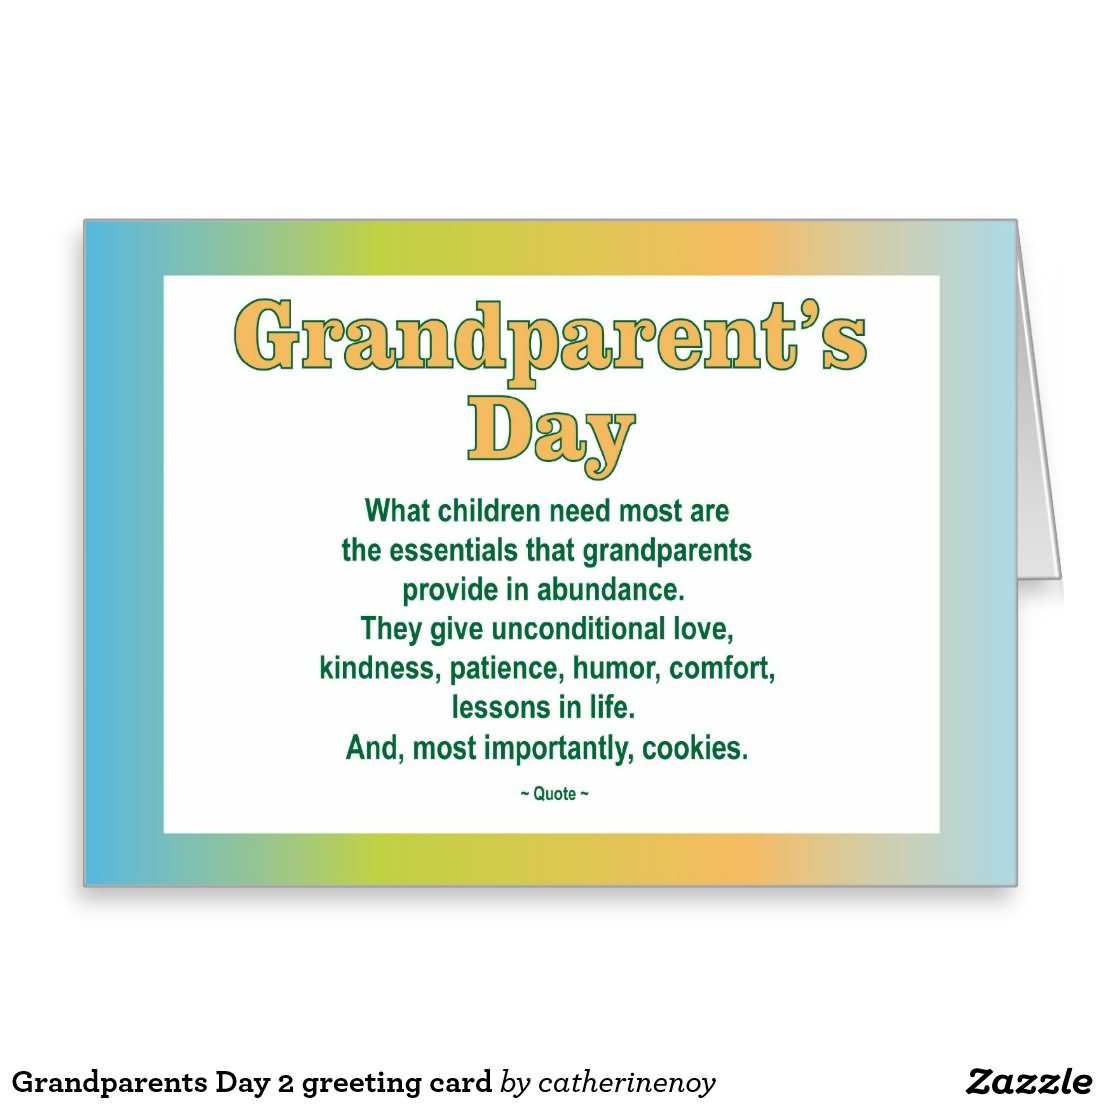 Grandparents Day What Children Need Most Are The Essentials That Provide In Abundance